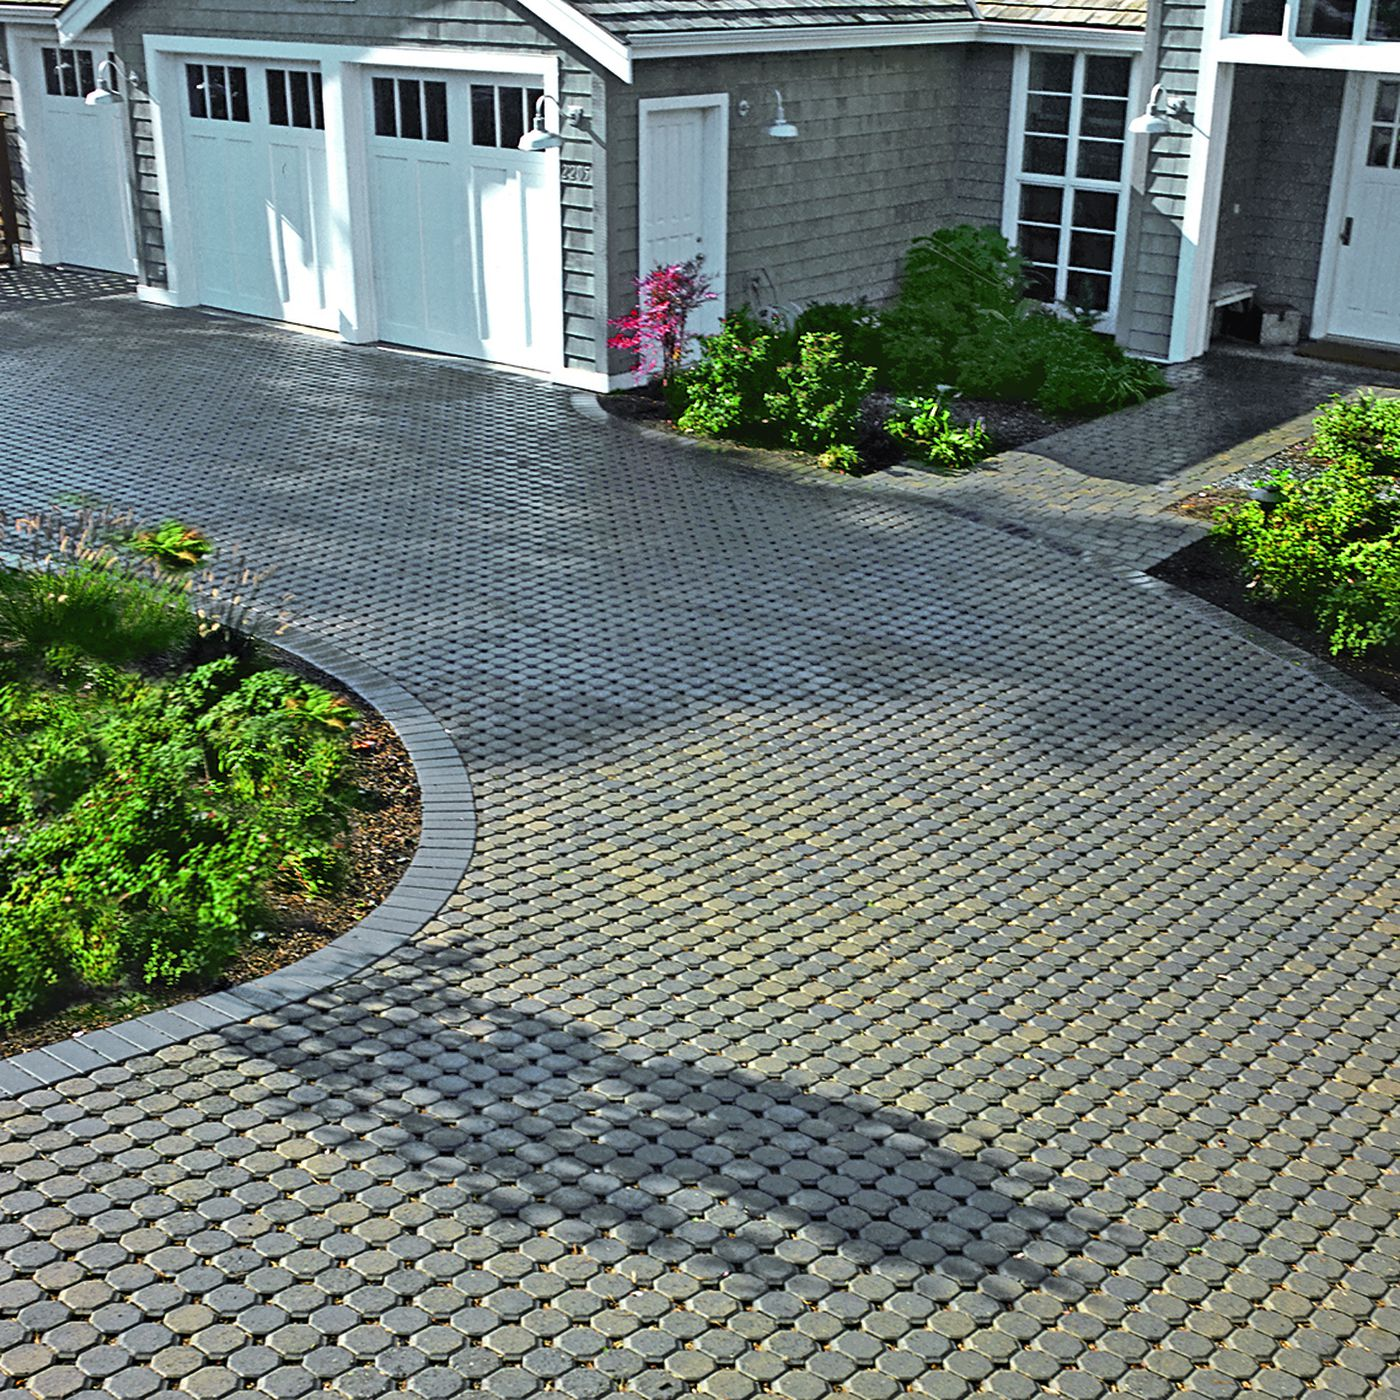 Prevent Driveway Puddles With Pervious Paving This Old House